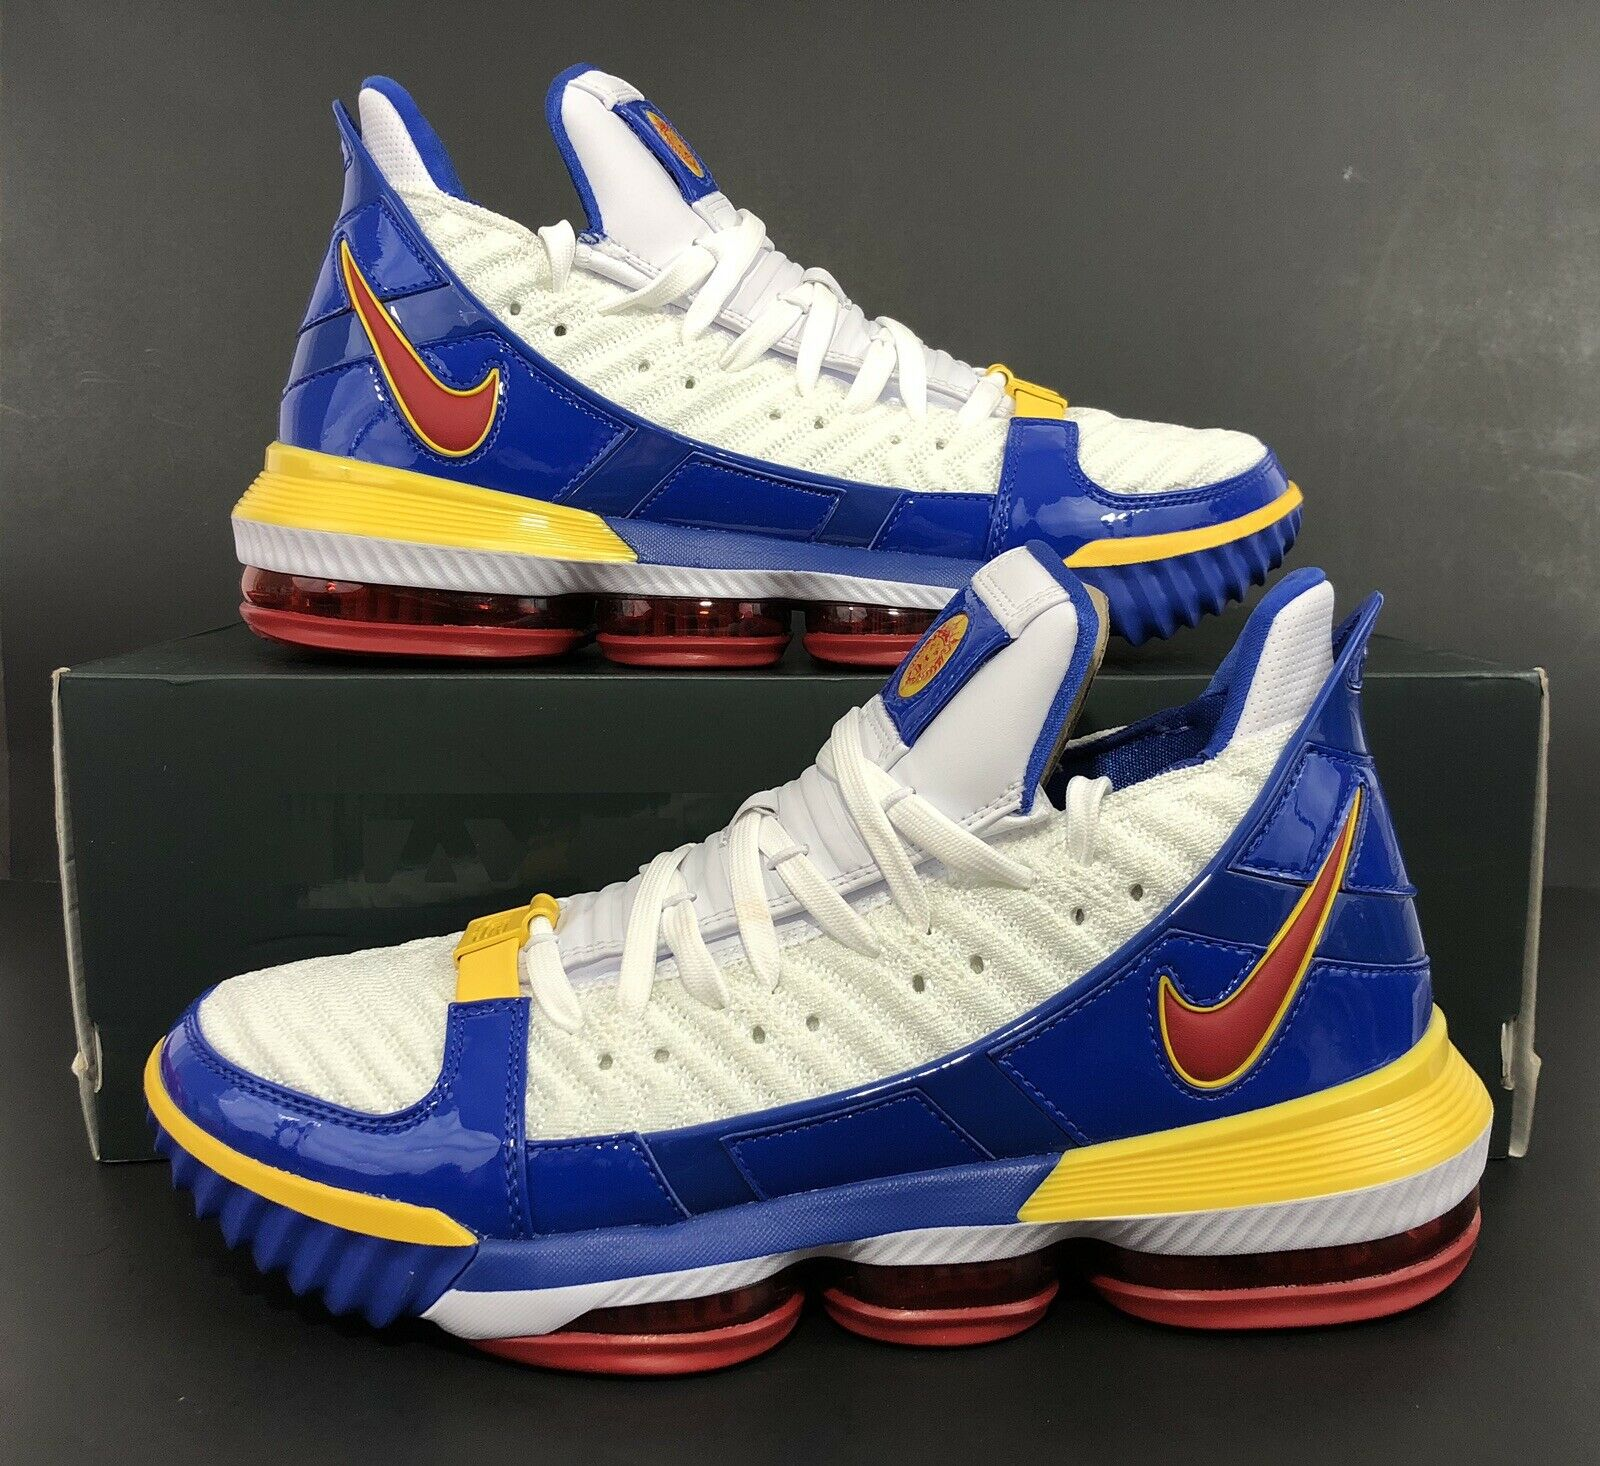 Nike LeBron XVI 16 SB SuperBron White Varsity Red bluee CD2451-100 Size 10